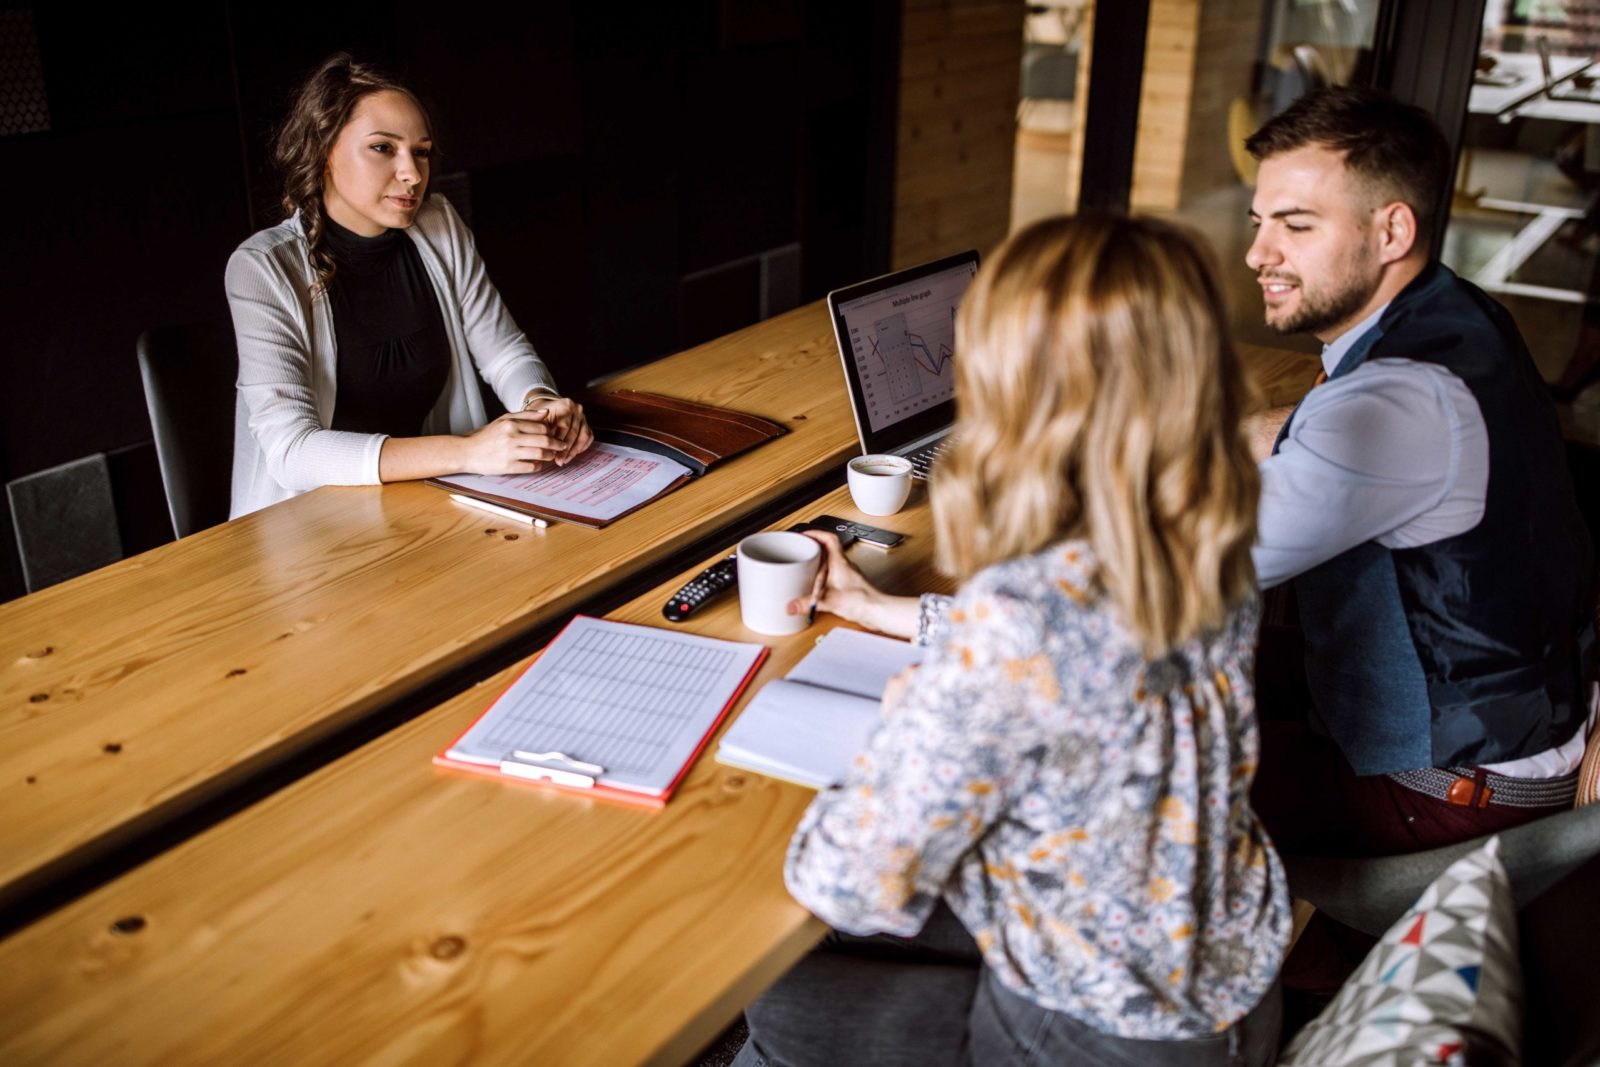 Man accompanied with two women sitting in board room and having business interview